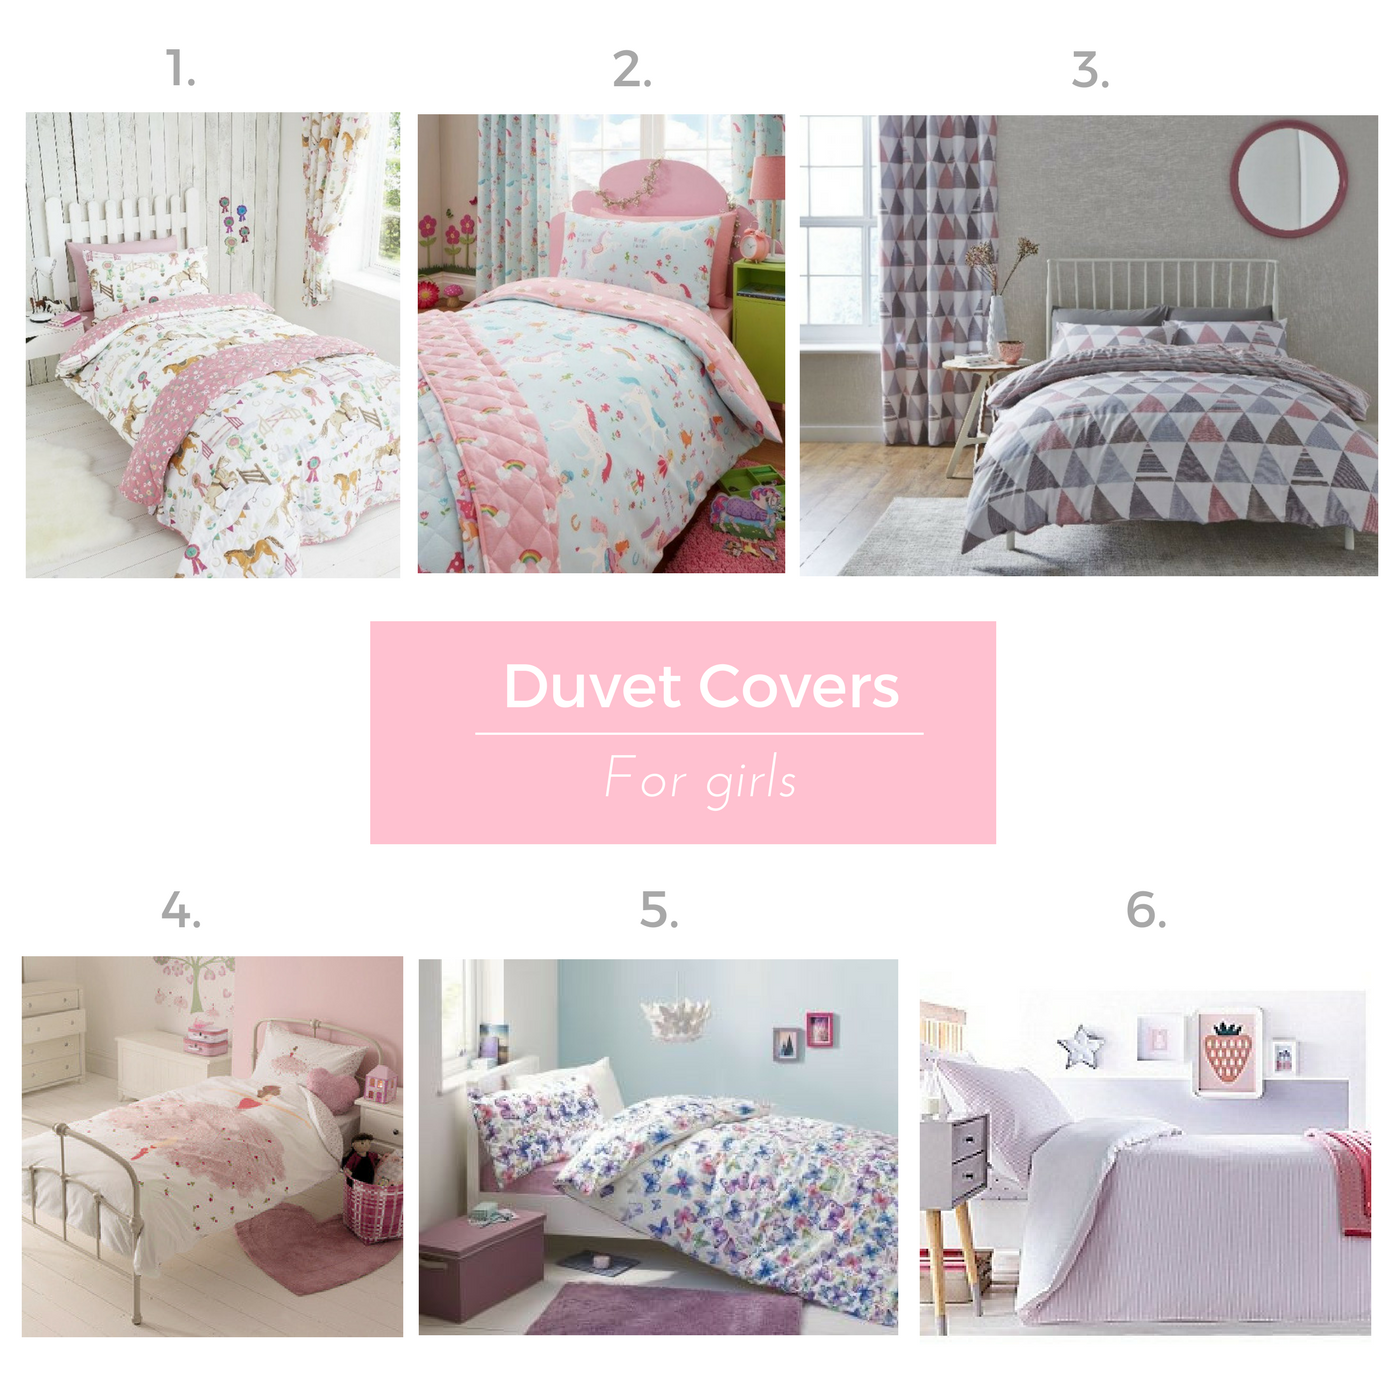 Duvet covers for girls